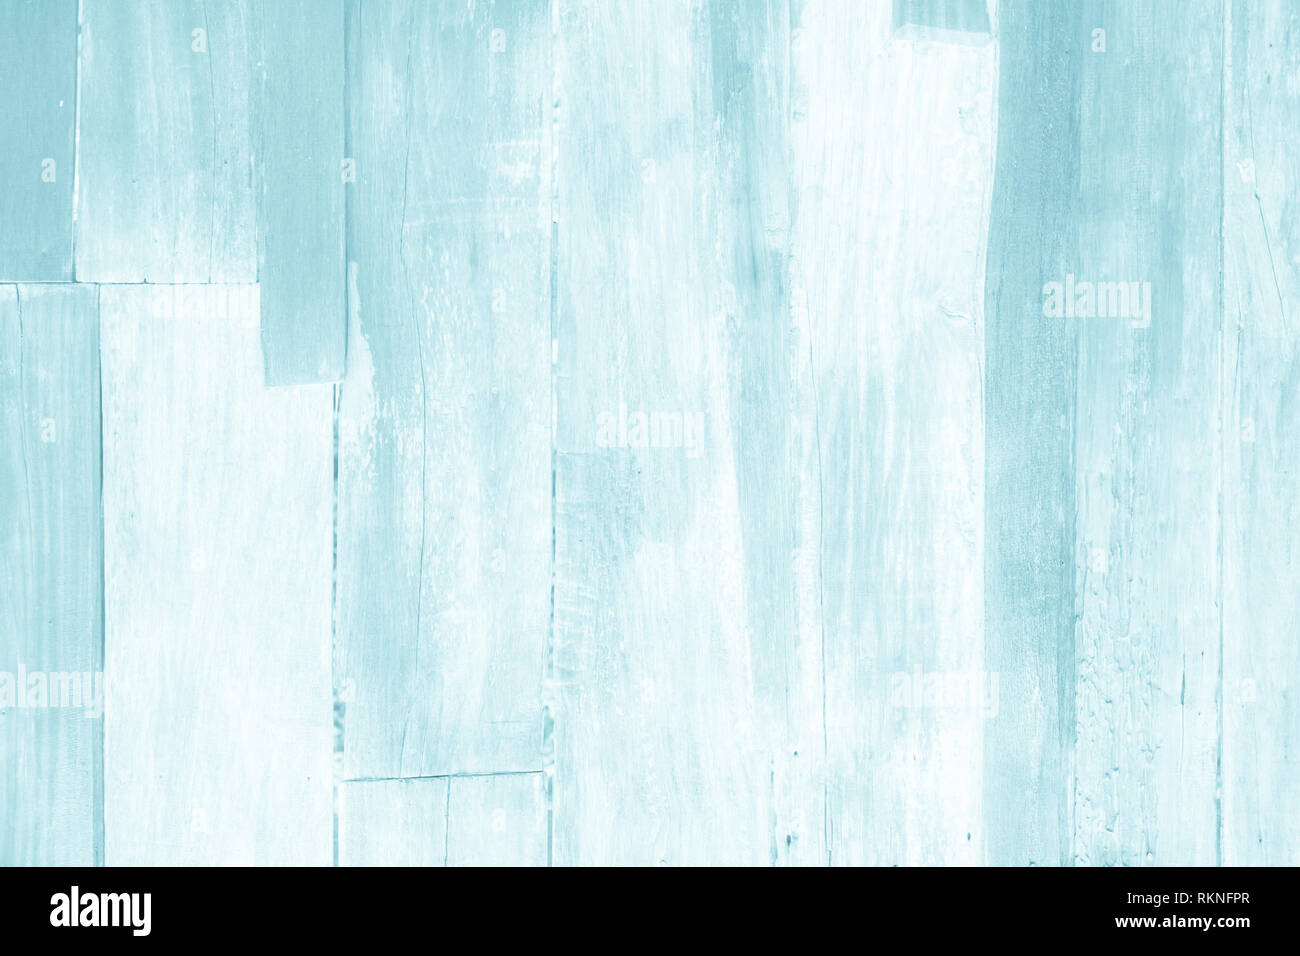 Wooden plank blue wood all antique cracked furniture weathered white vintage wallpaper texture background. Stock Photo